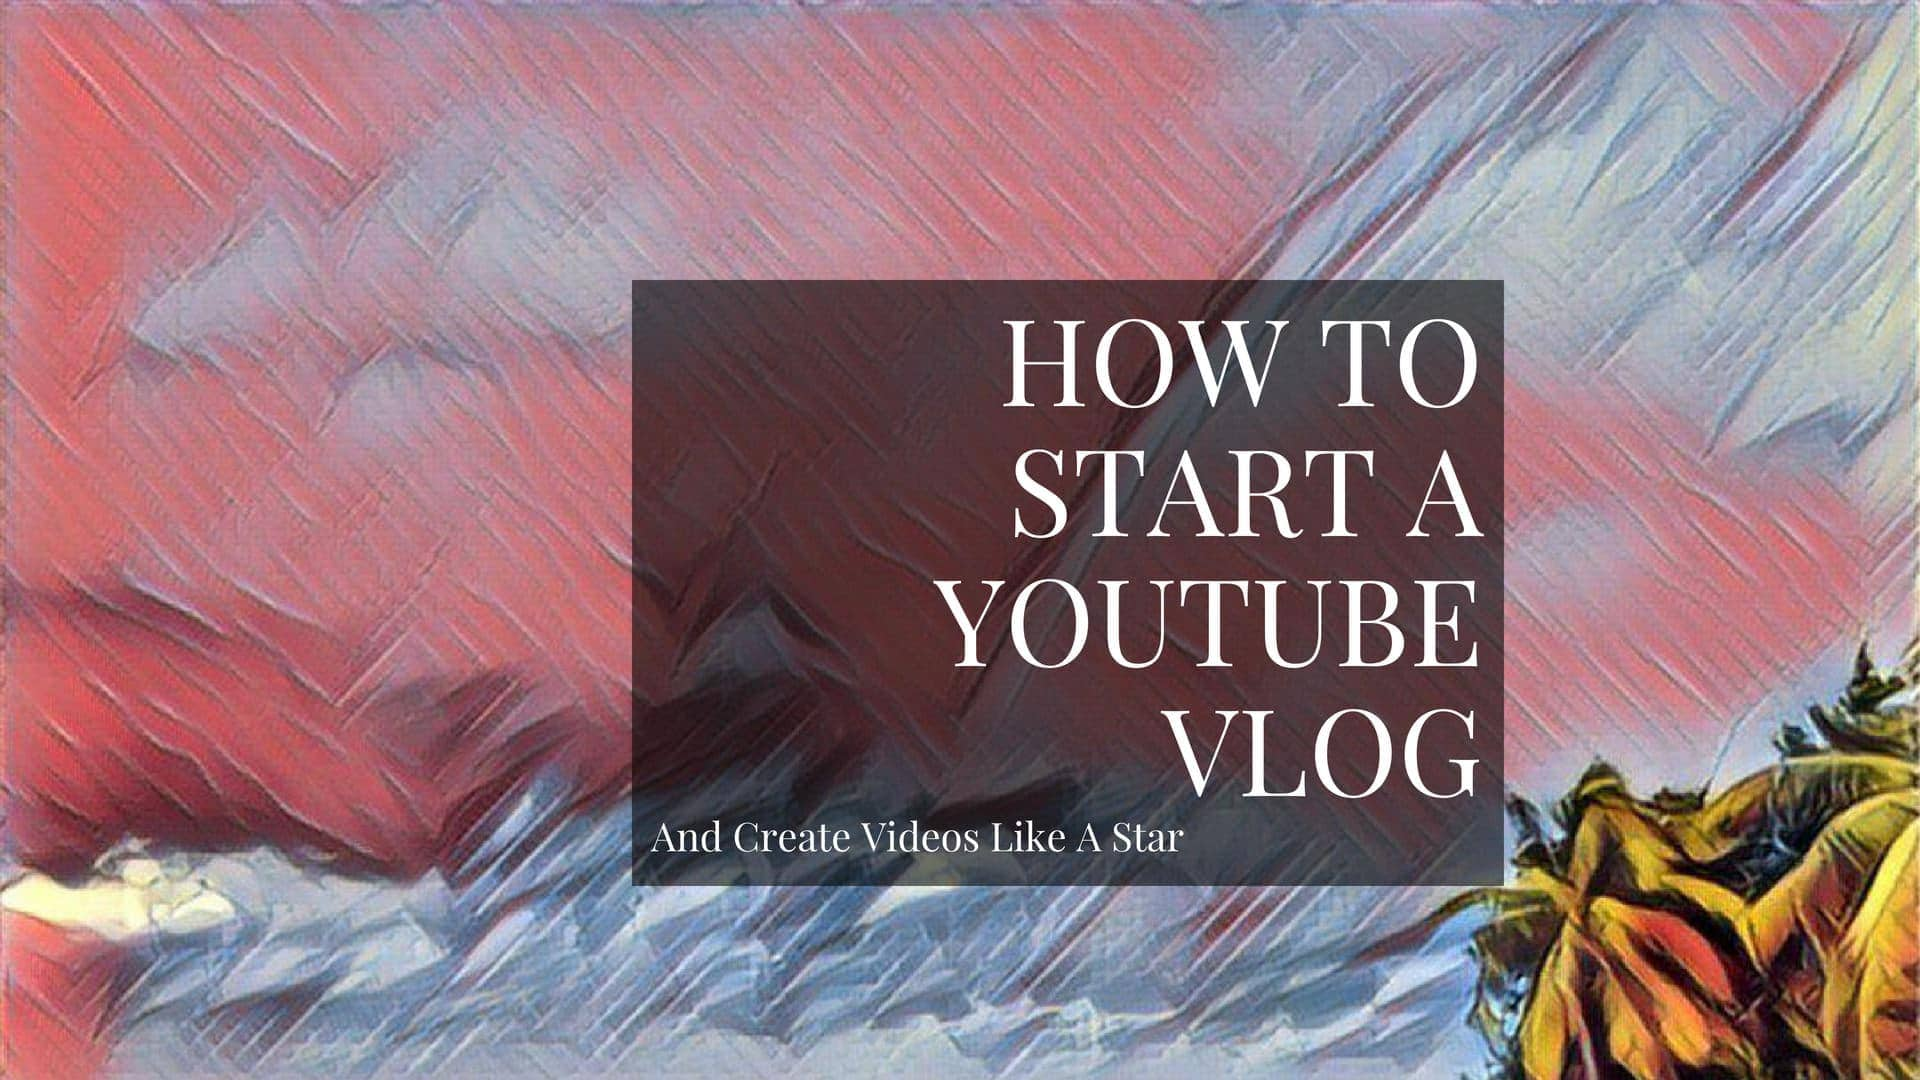 How To Start A Vlog And Become A YouTube Influencer - Marko